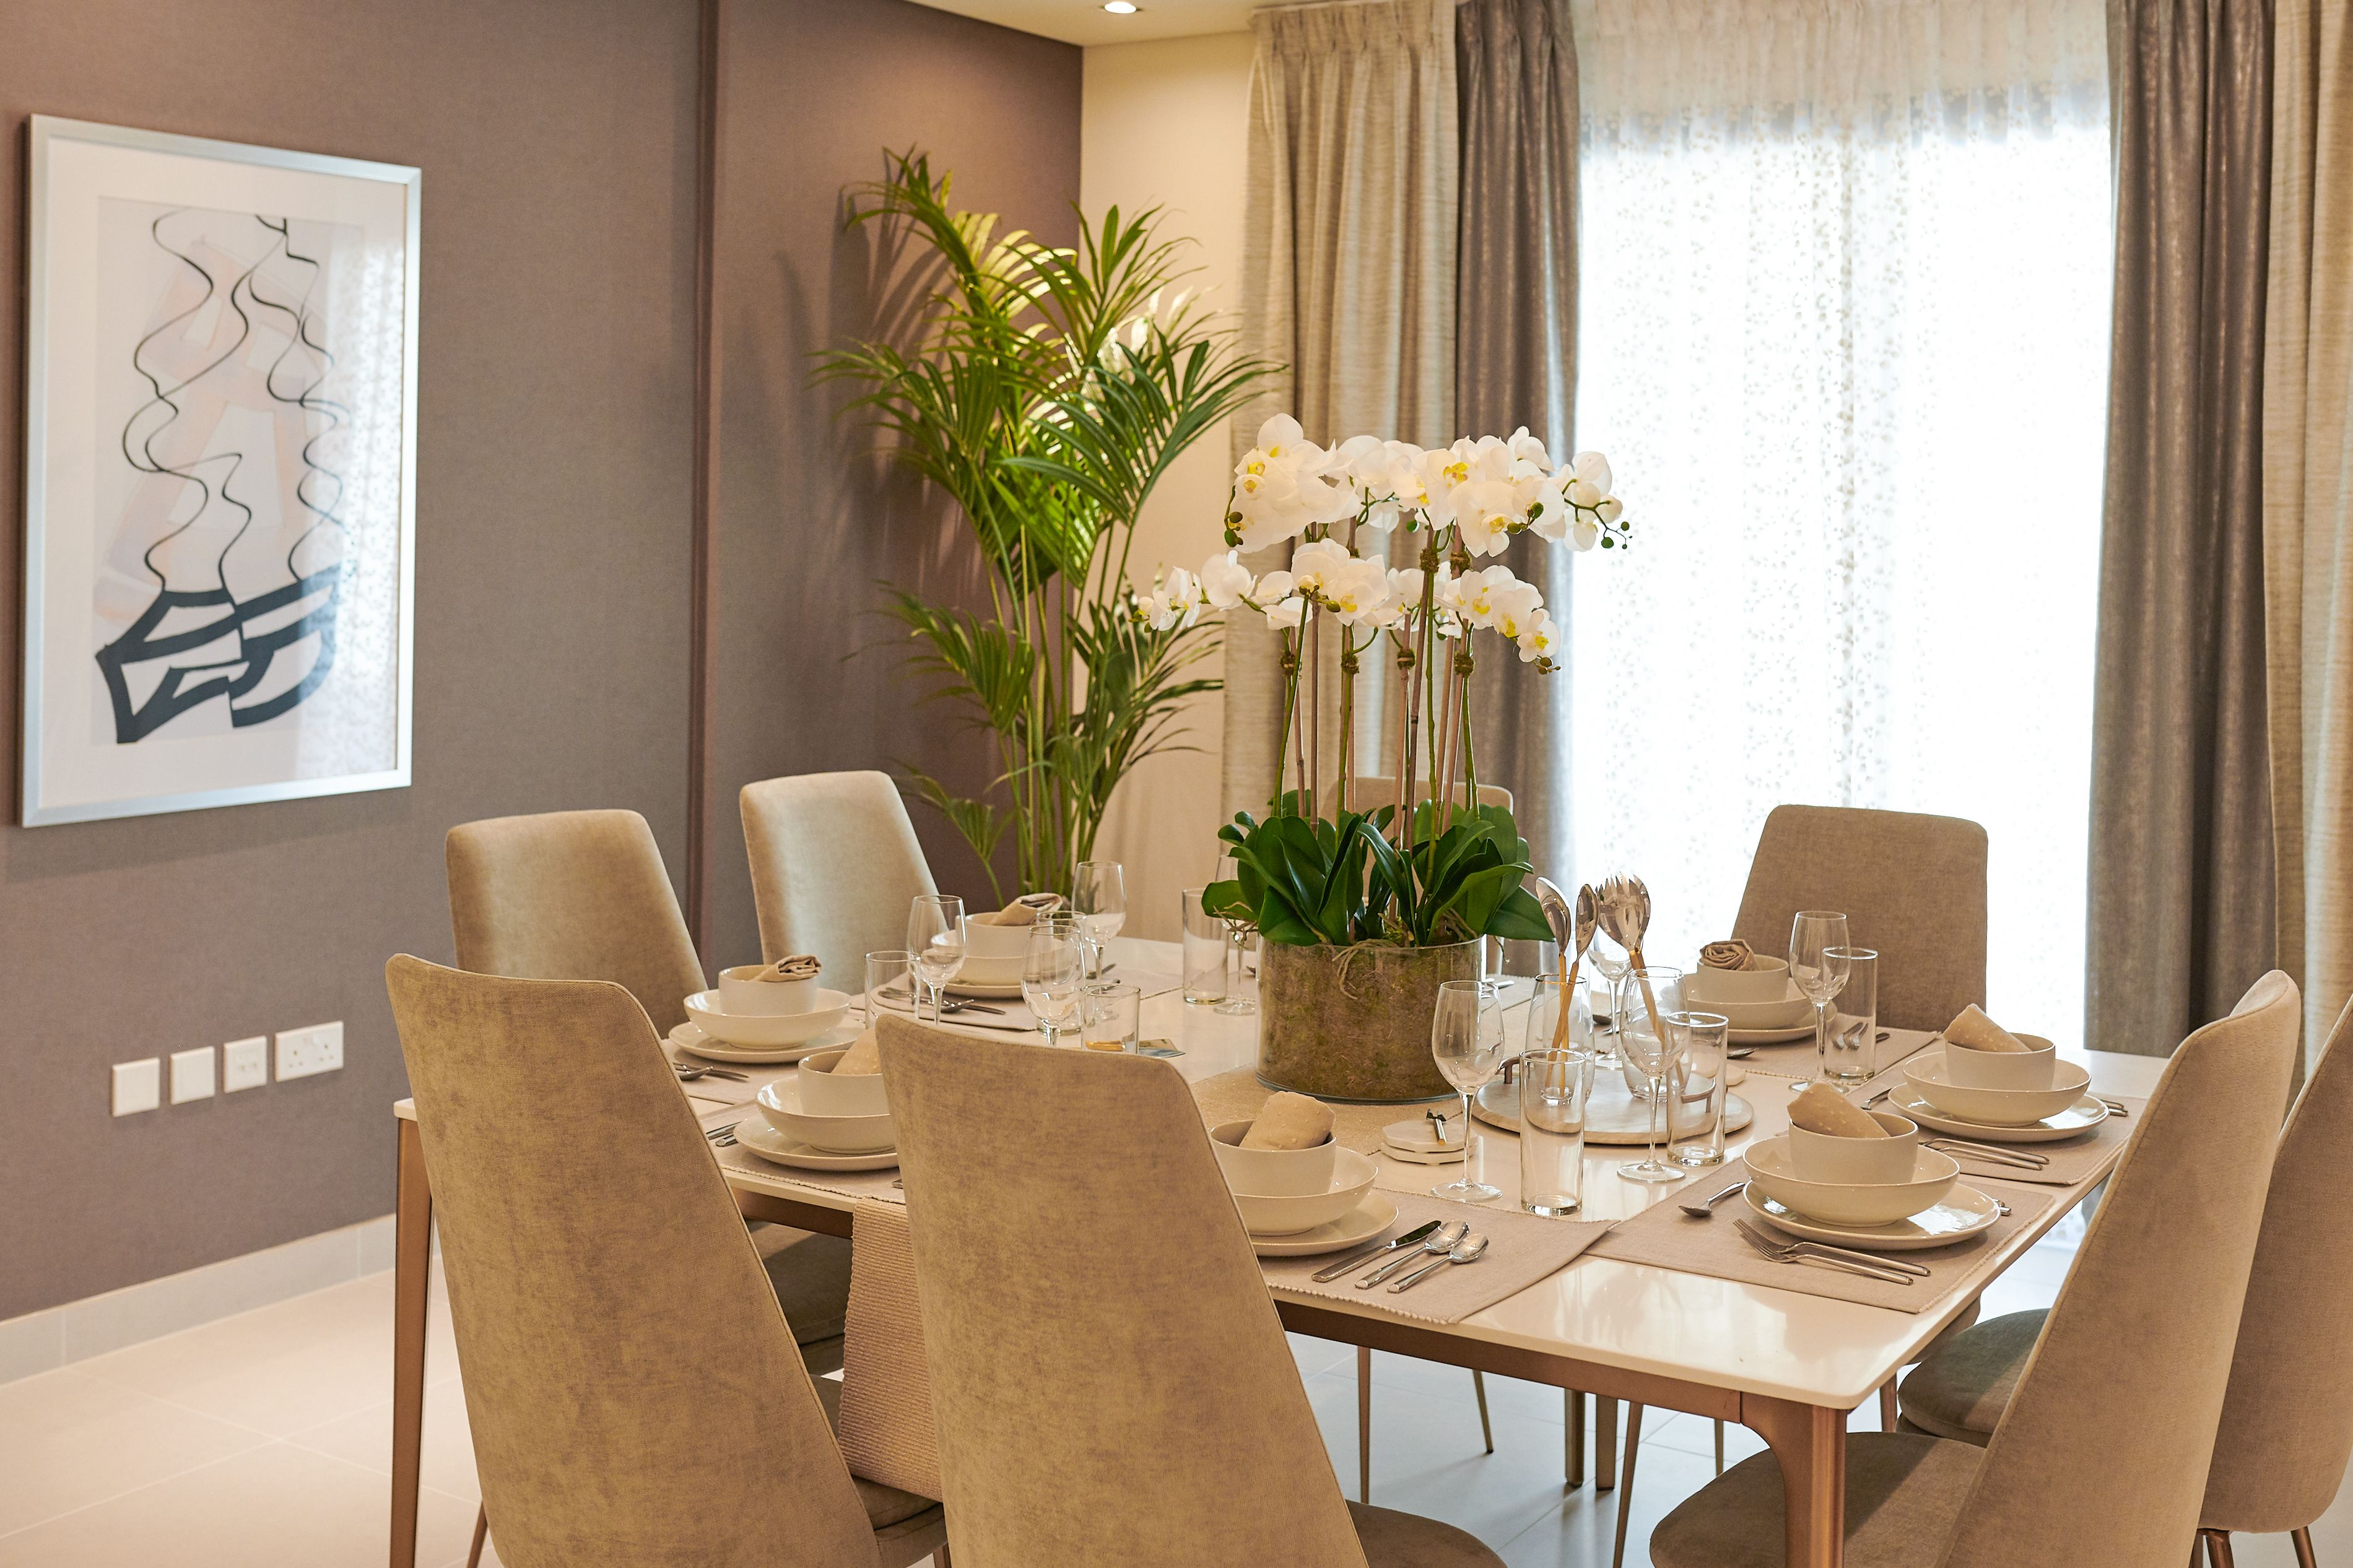 The Cool Sepia Villa by Sarhen International used plants as a fresh accent in this copper and grey formal dining room. #interiordesign #homedecor #diningroomdesign #diningtabledecor